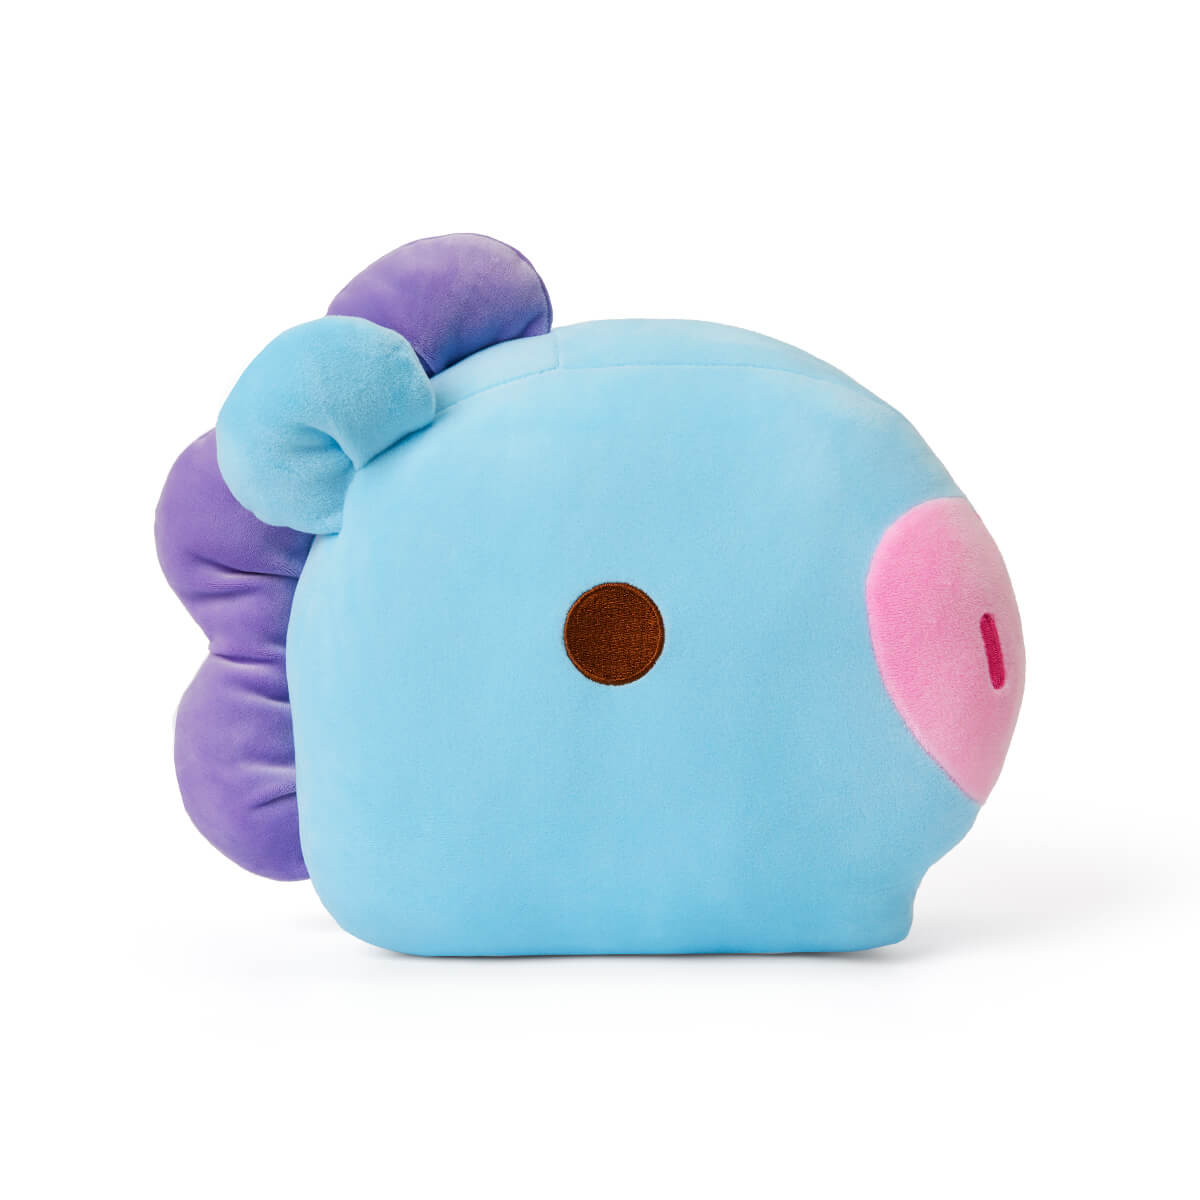 BT21 MANG BABY Hand Warmer Cushion